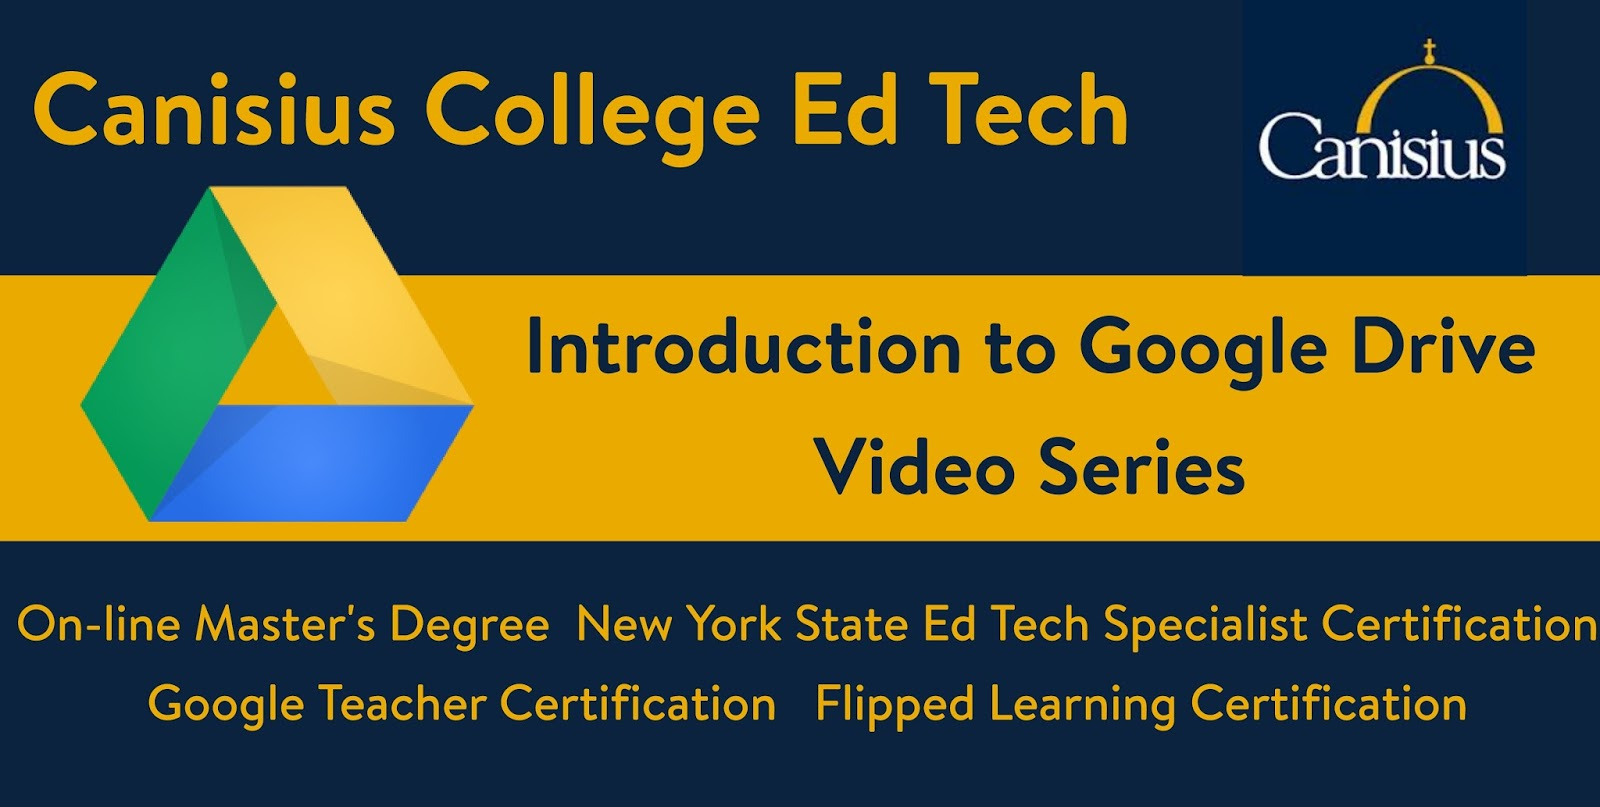 CanisiusEdTech.org